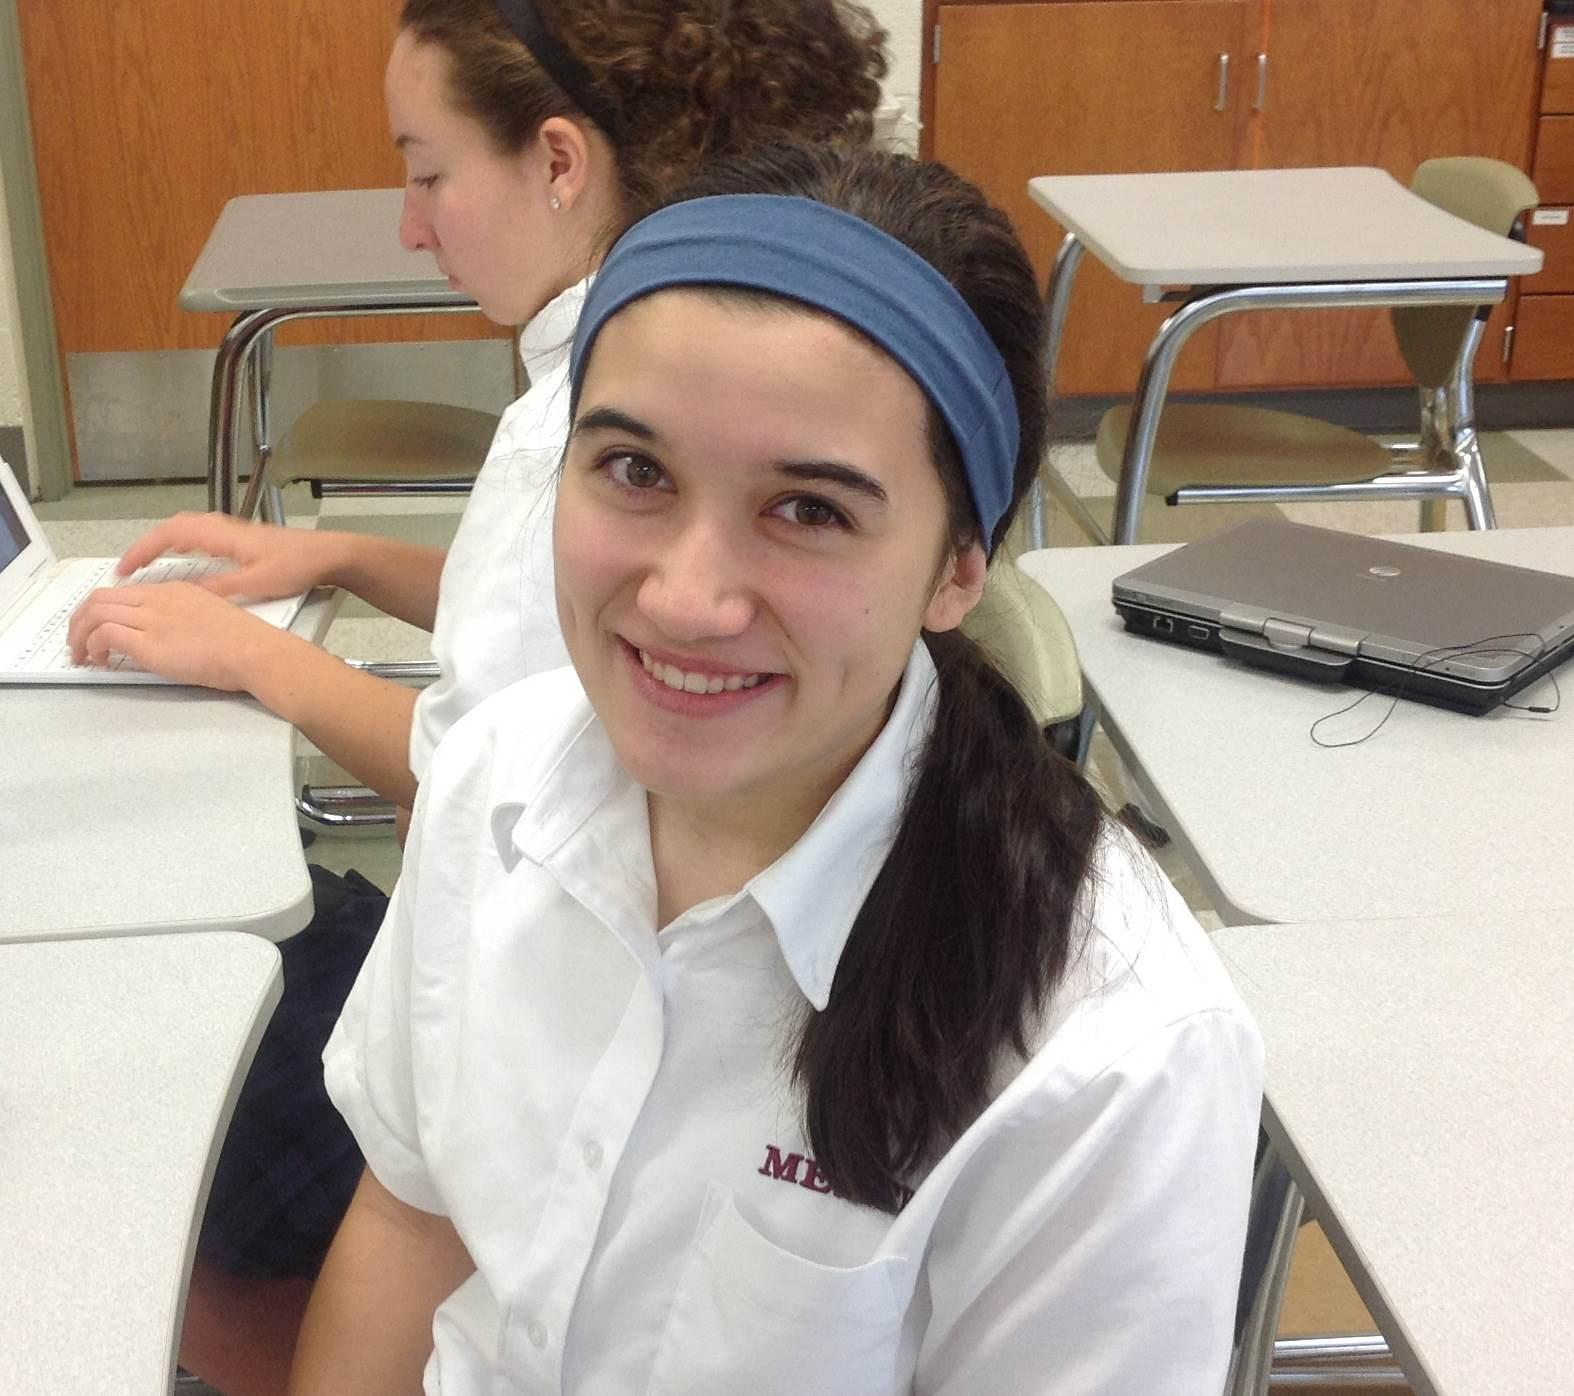 Though junior Sarah Hughes has only recently arrived at Mercy, she embodies one of Mercy's core principles: strong, uncompromising faith. However, she, unlike many others, forged her own unique religious path.